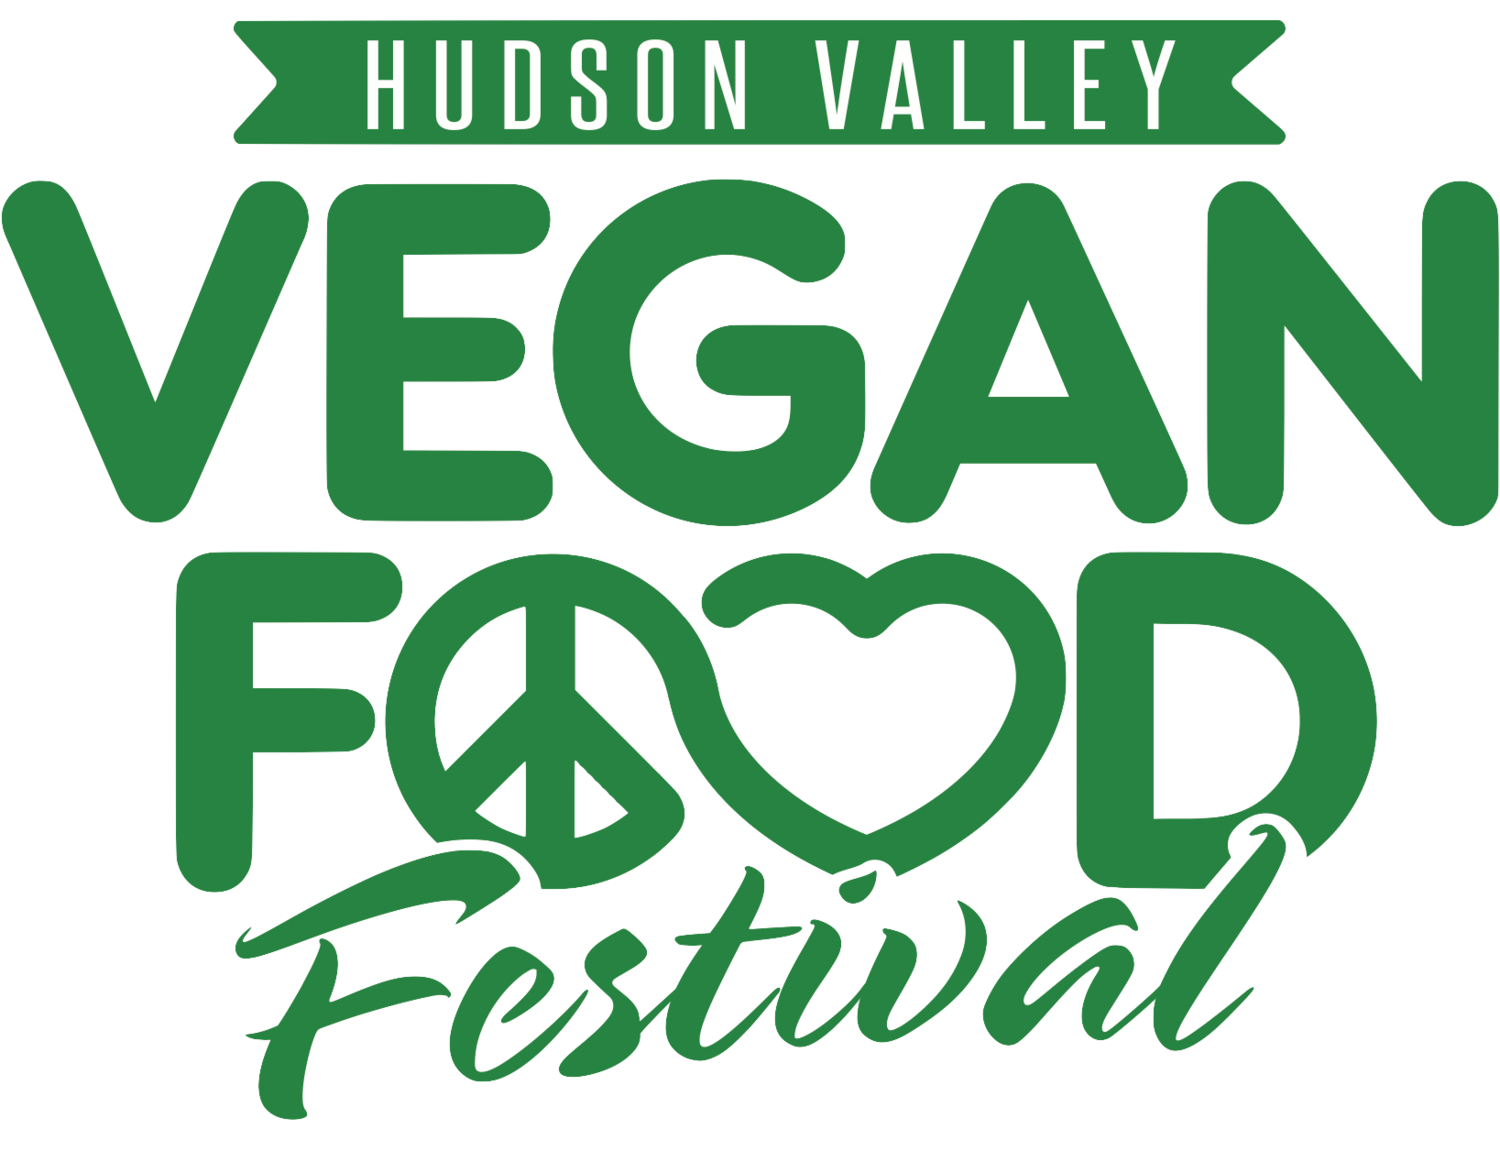 Hudson Valley Vegan Food Festival